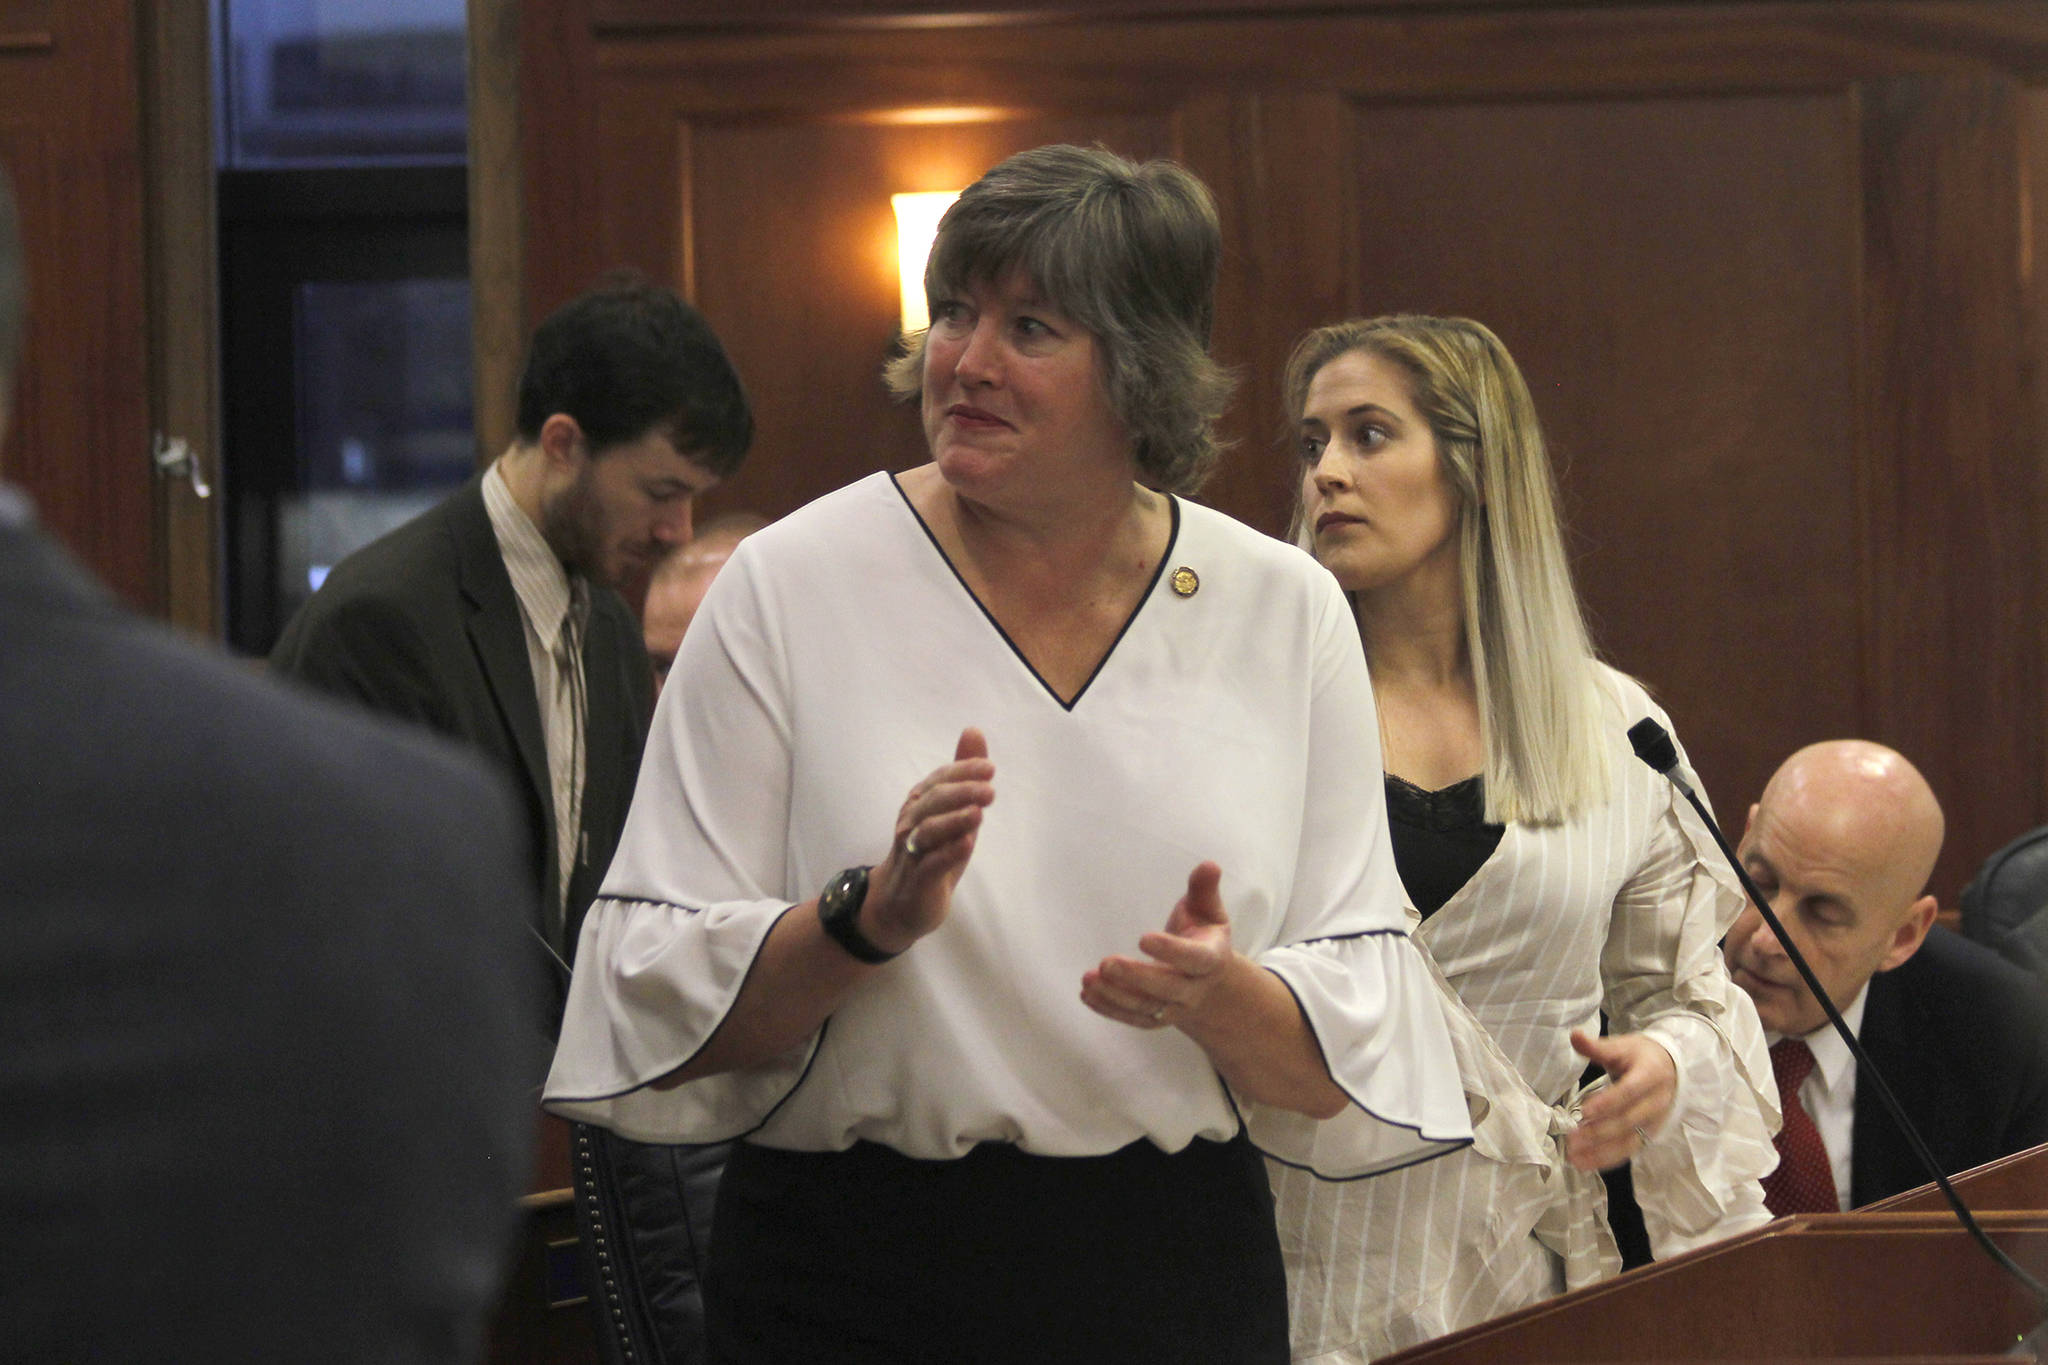 Rep. Sara Hannan, D-Juneau, claps as she introduces a guest during a House of Representatives floor session on Tuesday. (Alex McCarthy | Juneau Empire)